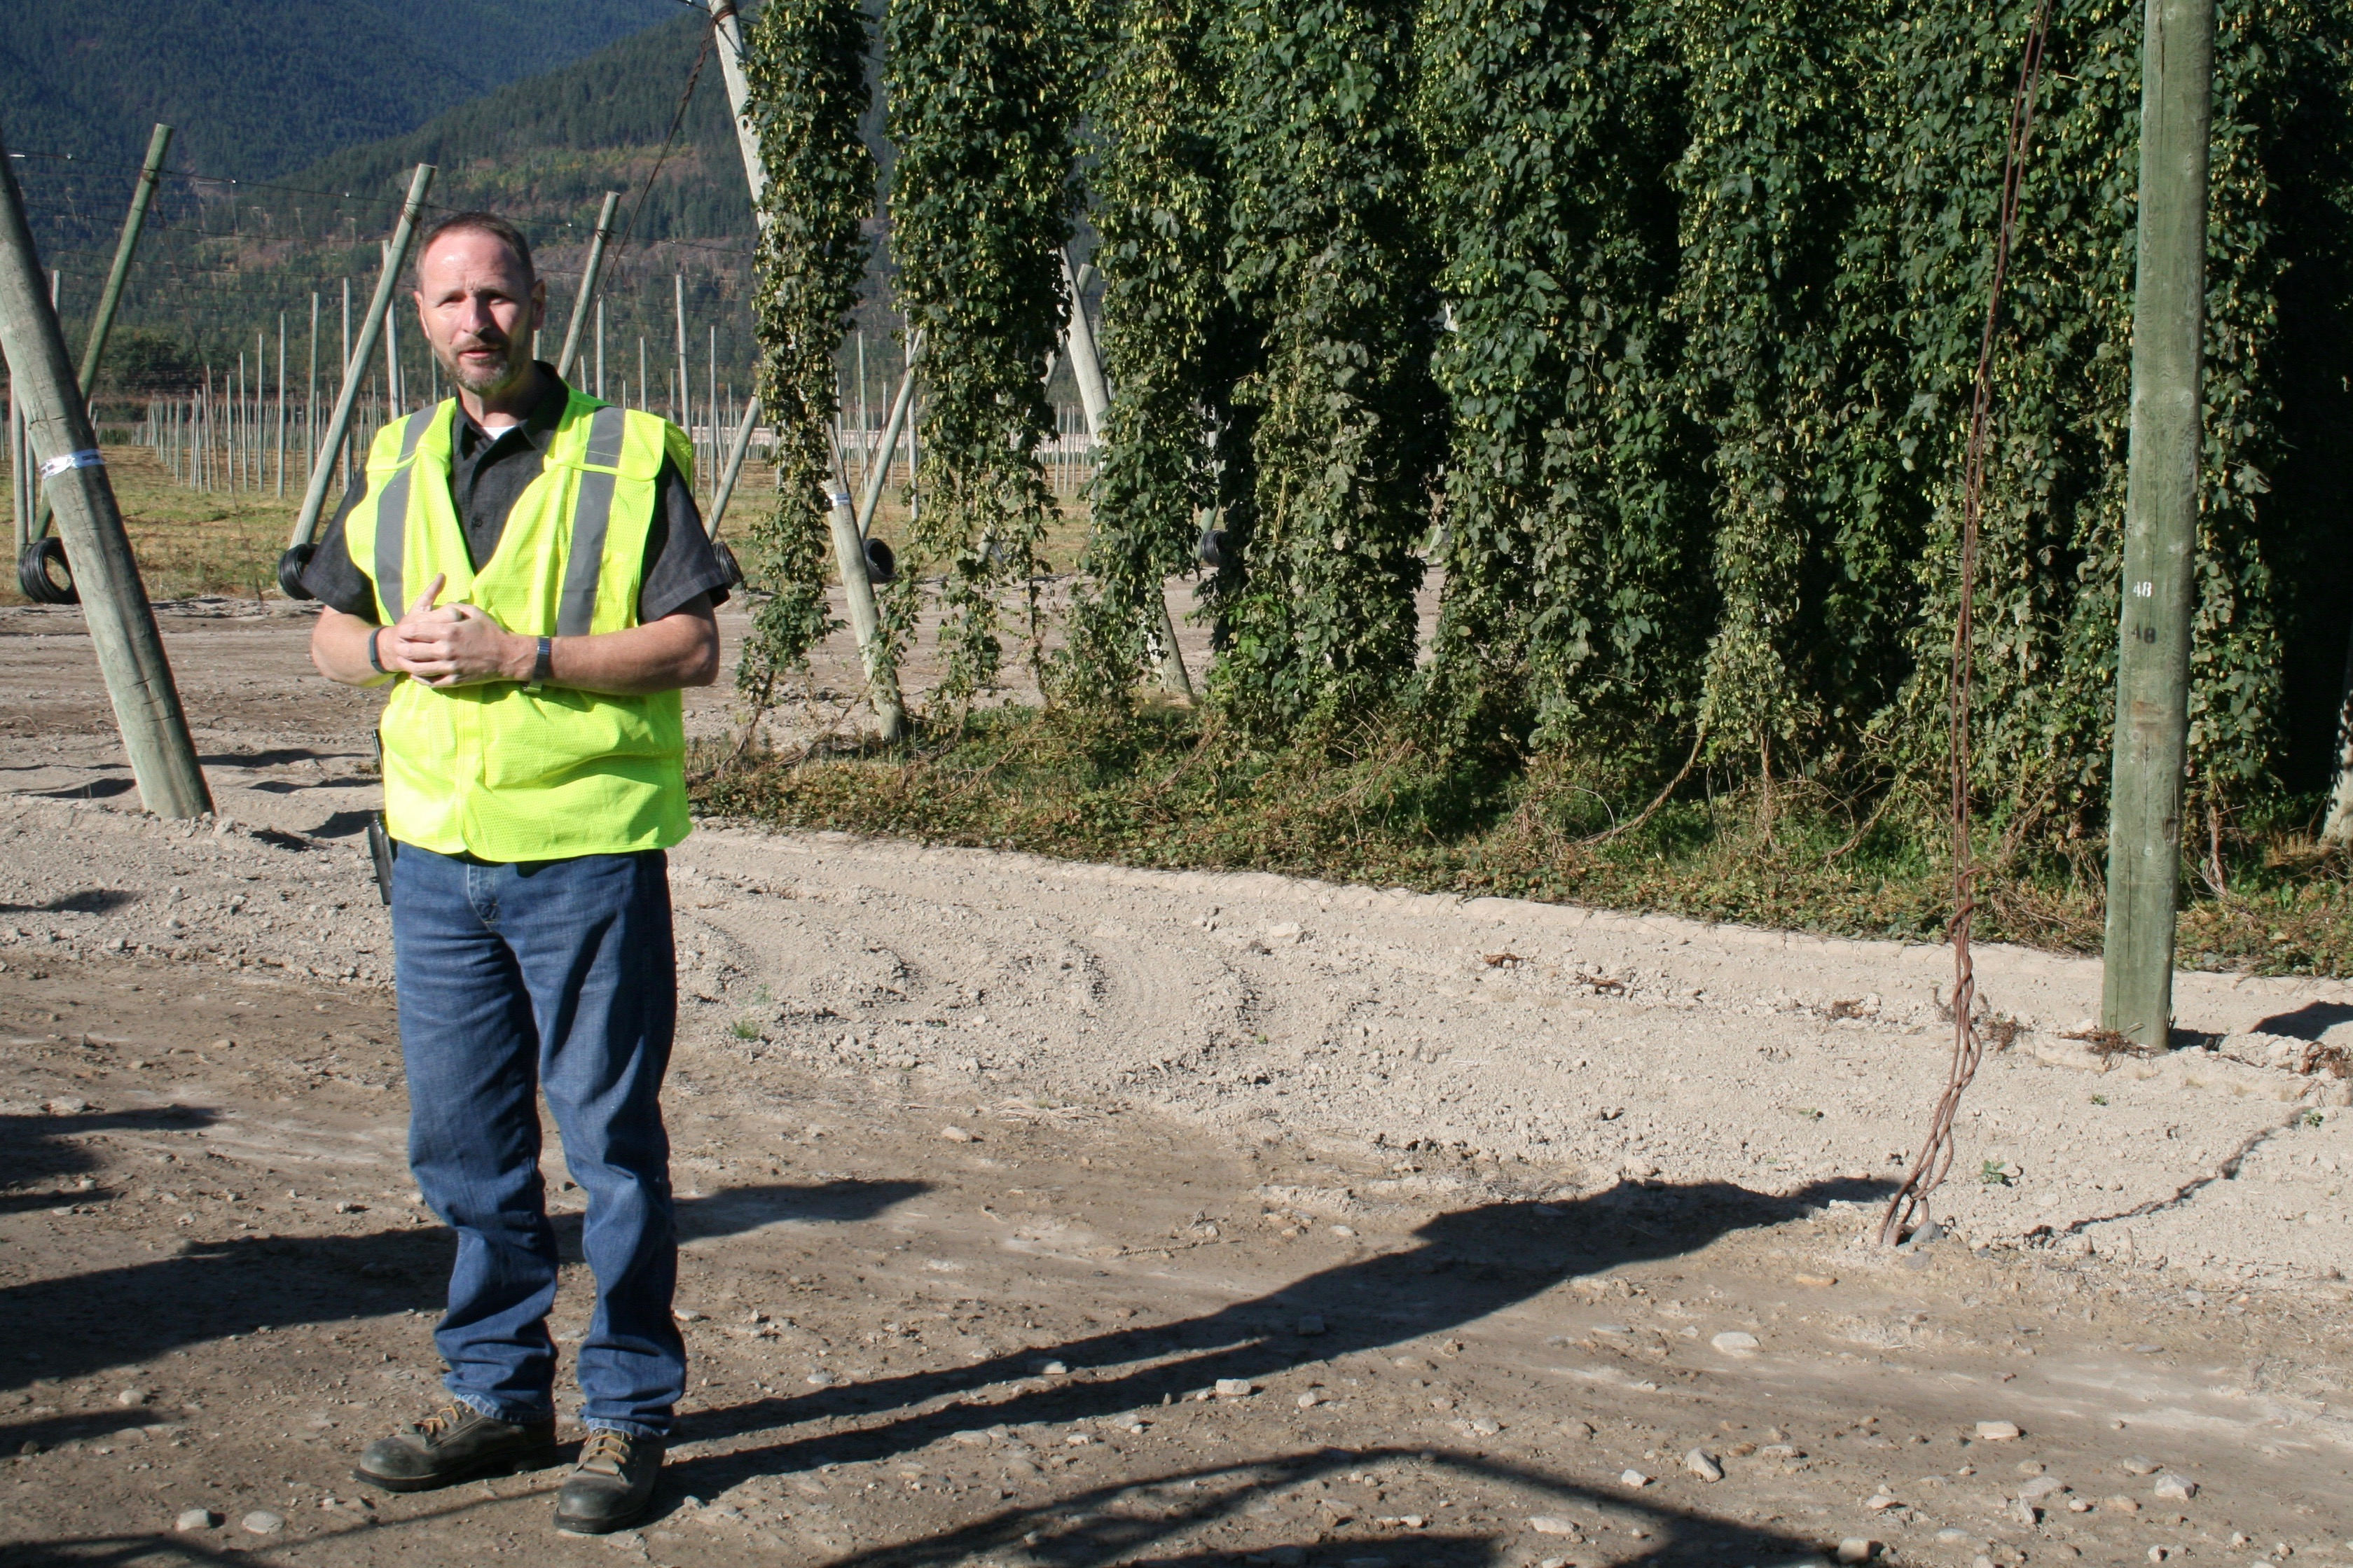 Ed Atkins, General Manager at Elk Mountain Farms, leads the Goose Island Hop Farm Tour in later August. On this day the farm was harvesting Saaz hops.